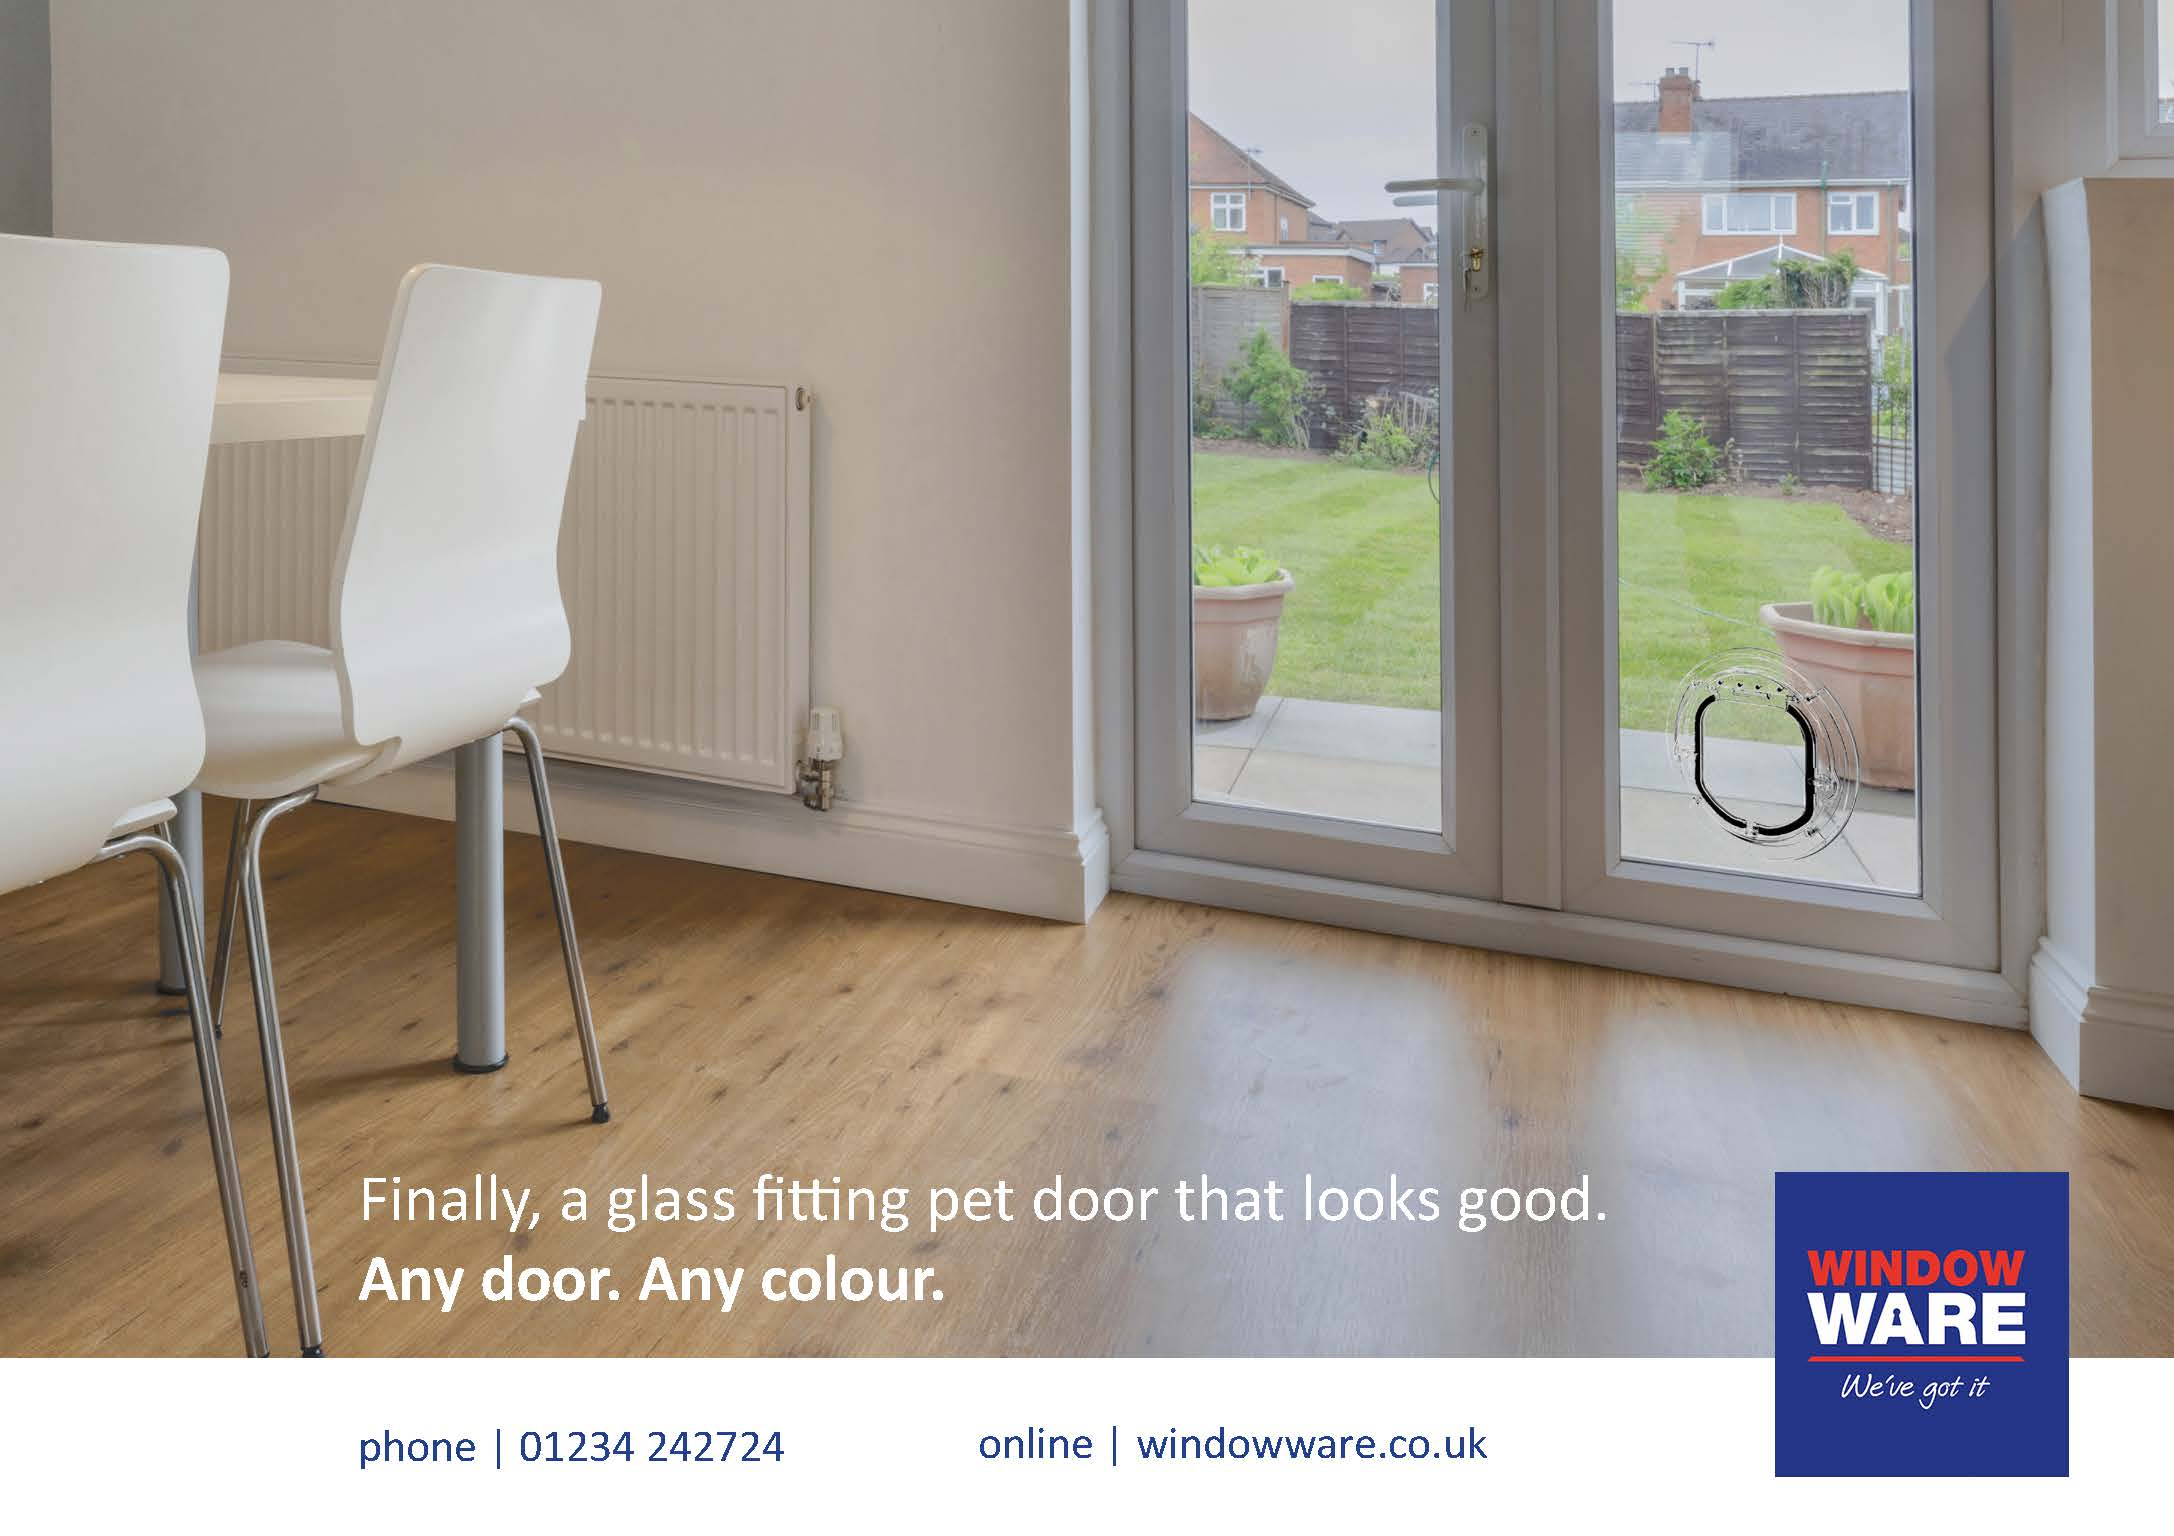 Finally A Glass Fitting Pet Door That Looks Good In All Doors Any